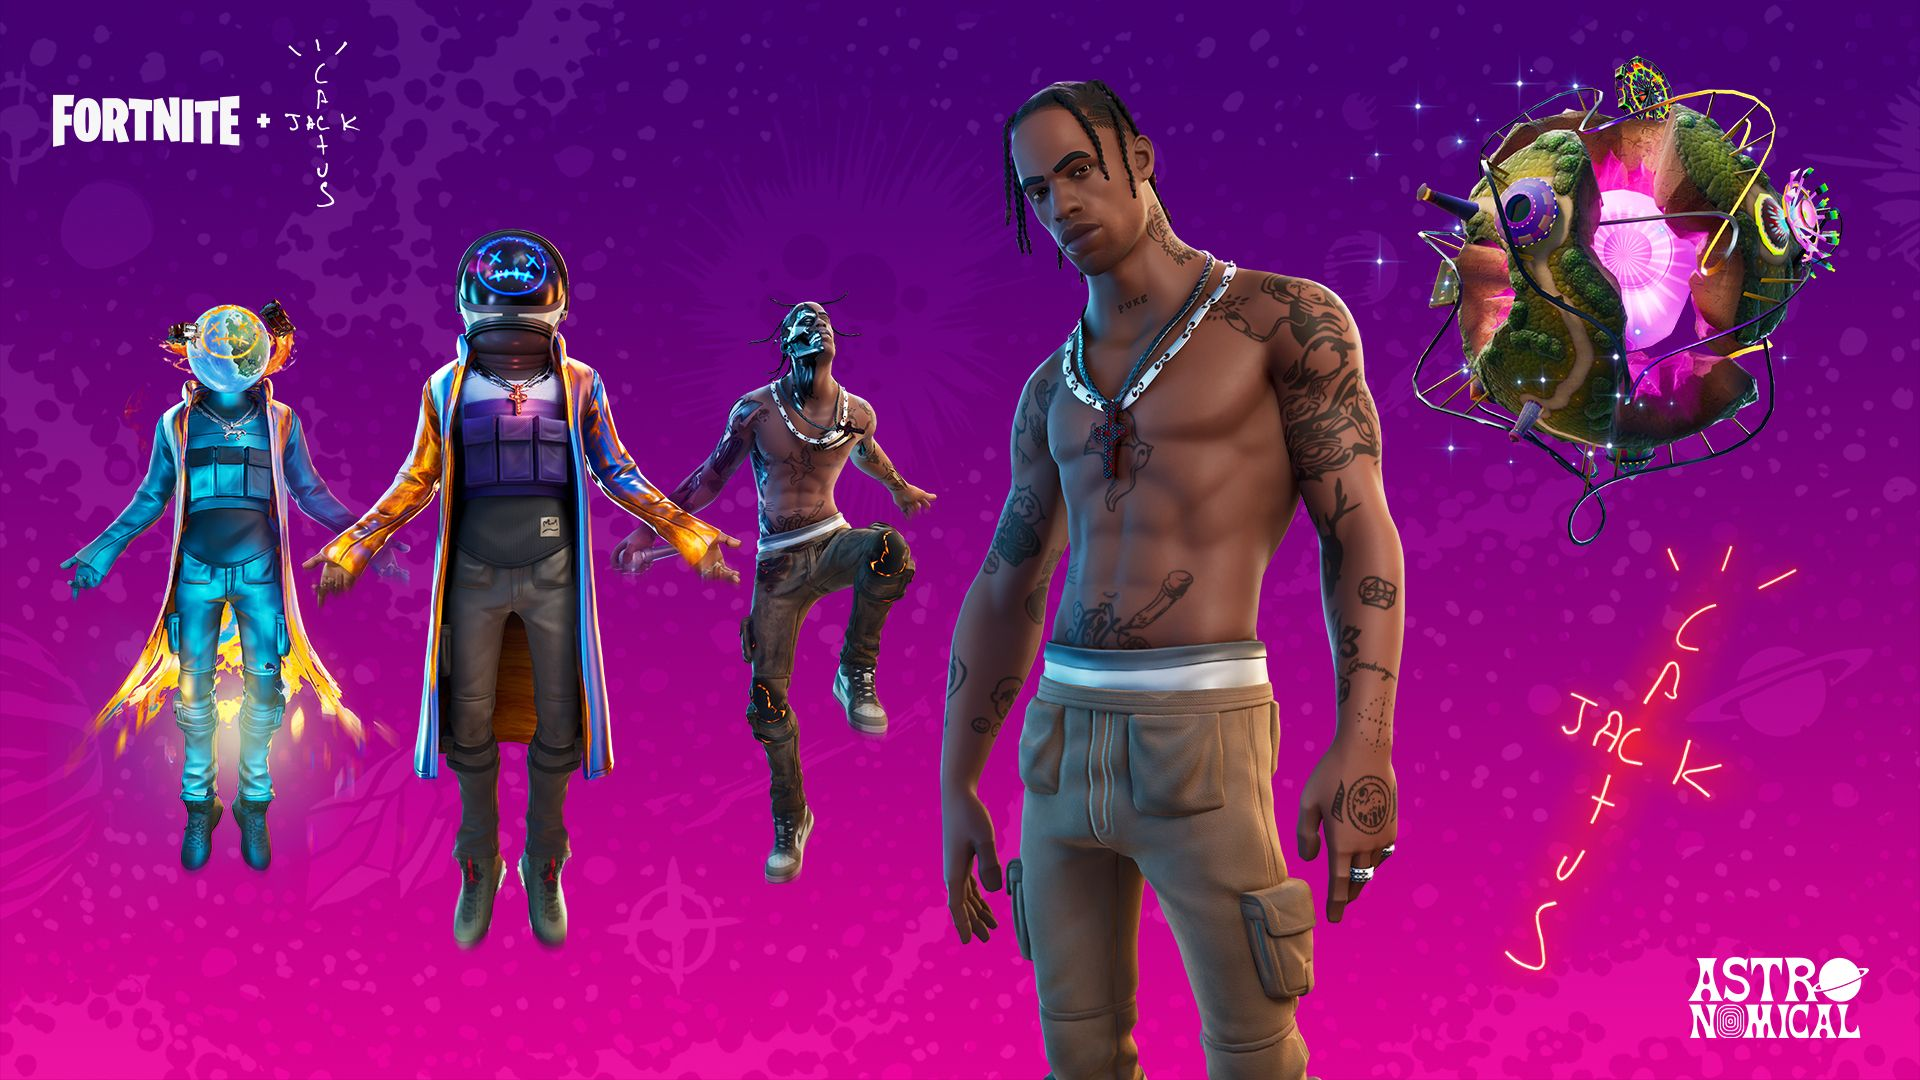 Fortnite Travis Scott Wallpapers Top Free Fortnite Travis Scott Backgrounds Wallpaperaccess